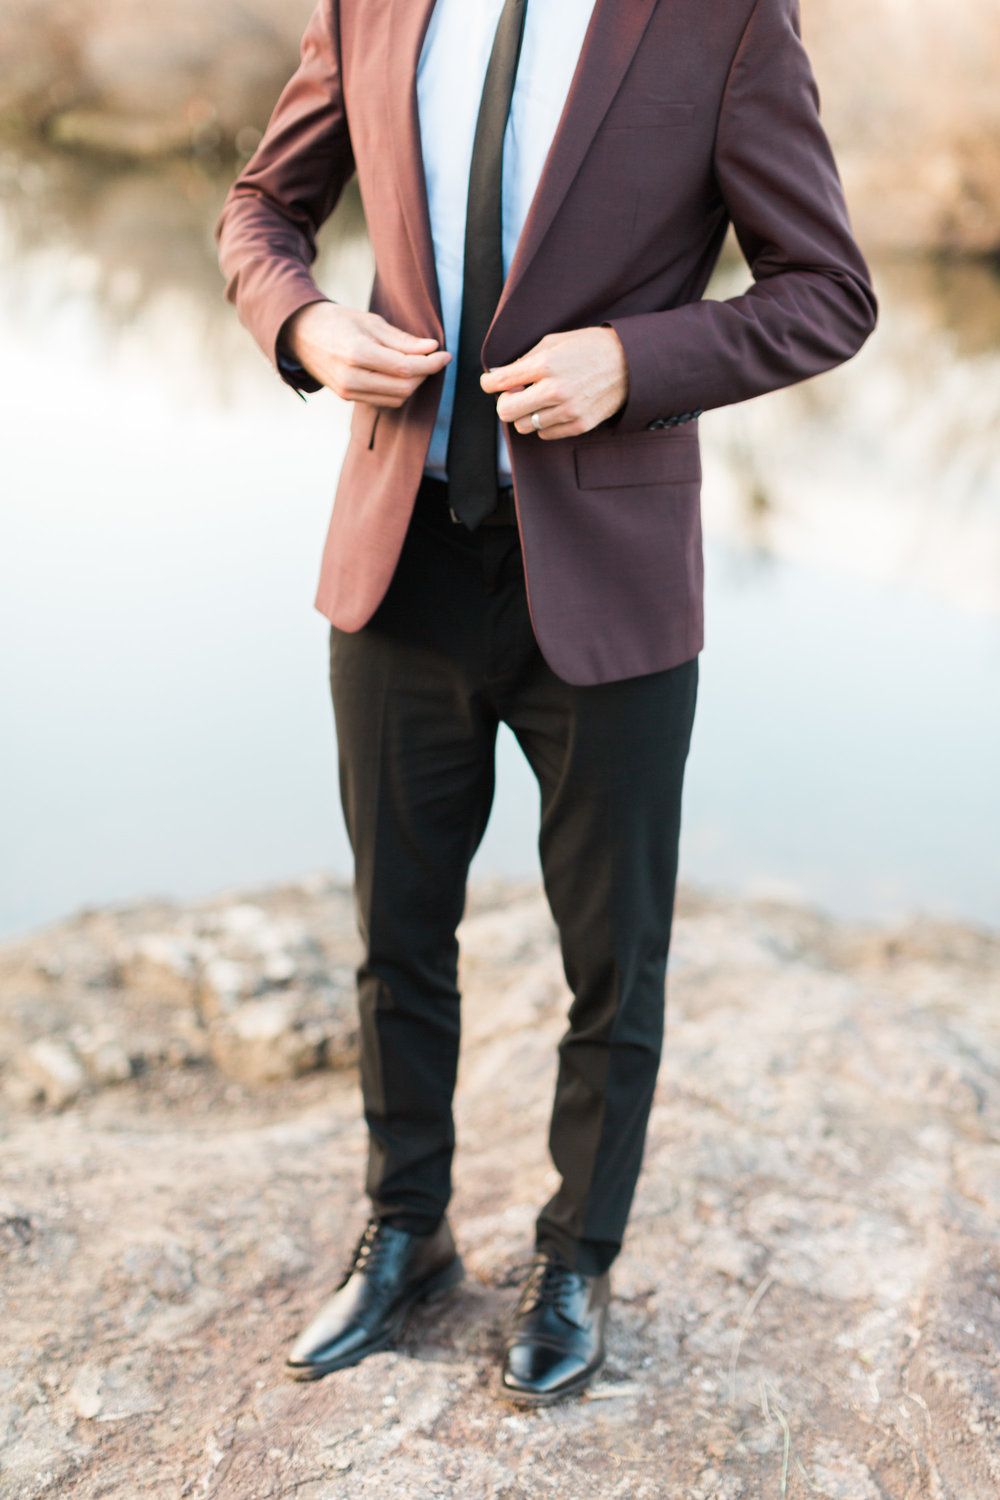 Groom buttoning his burgundy jacket on his wedding day.